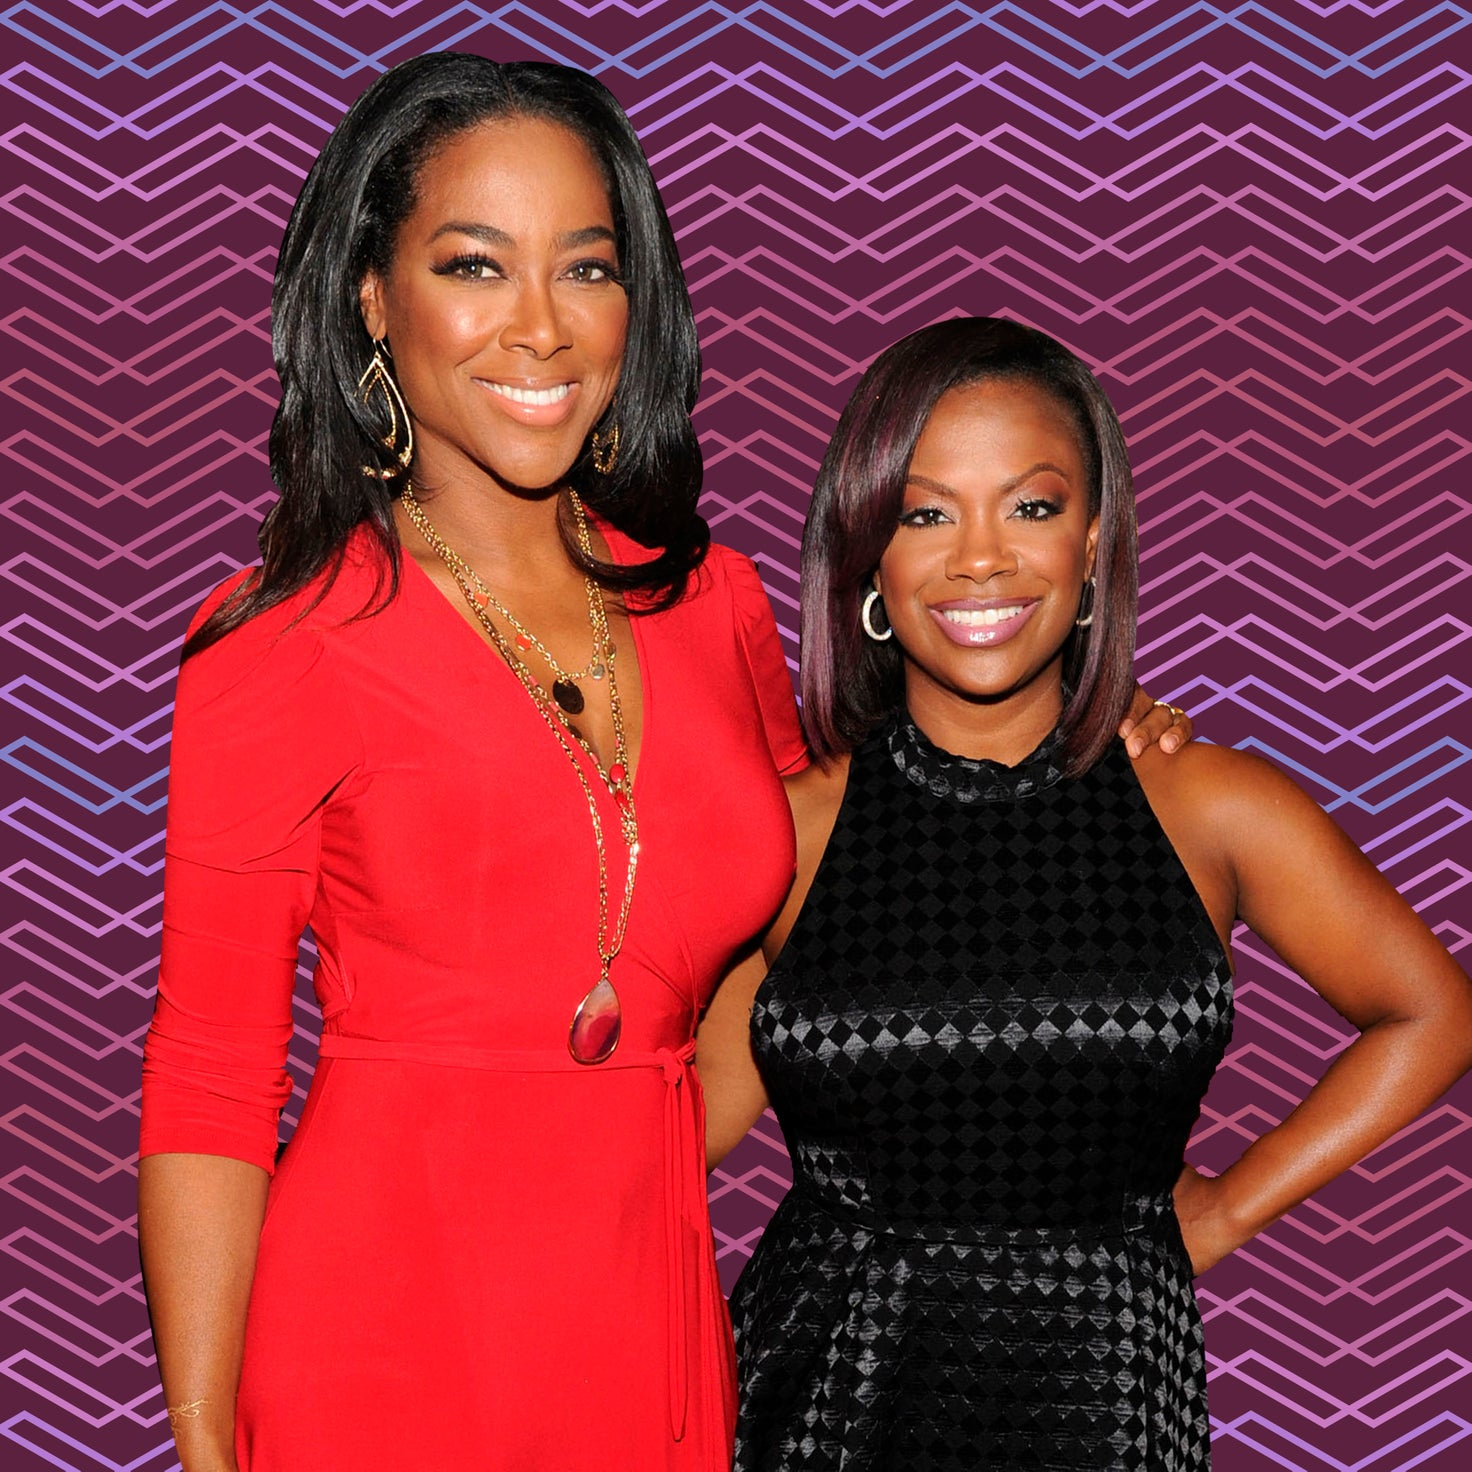 """kandi-burruss-hangs-out-with-kenya-moore-check-out-the-gorgeous-ladies"""